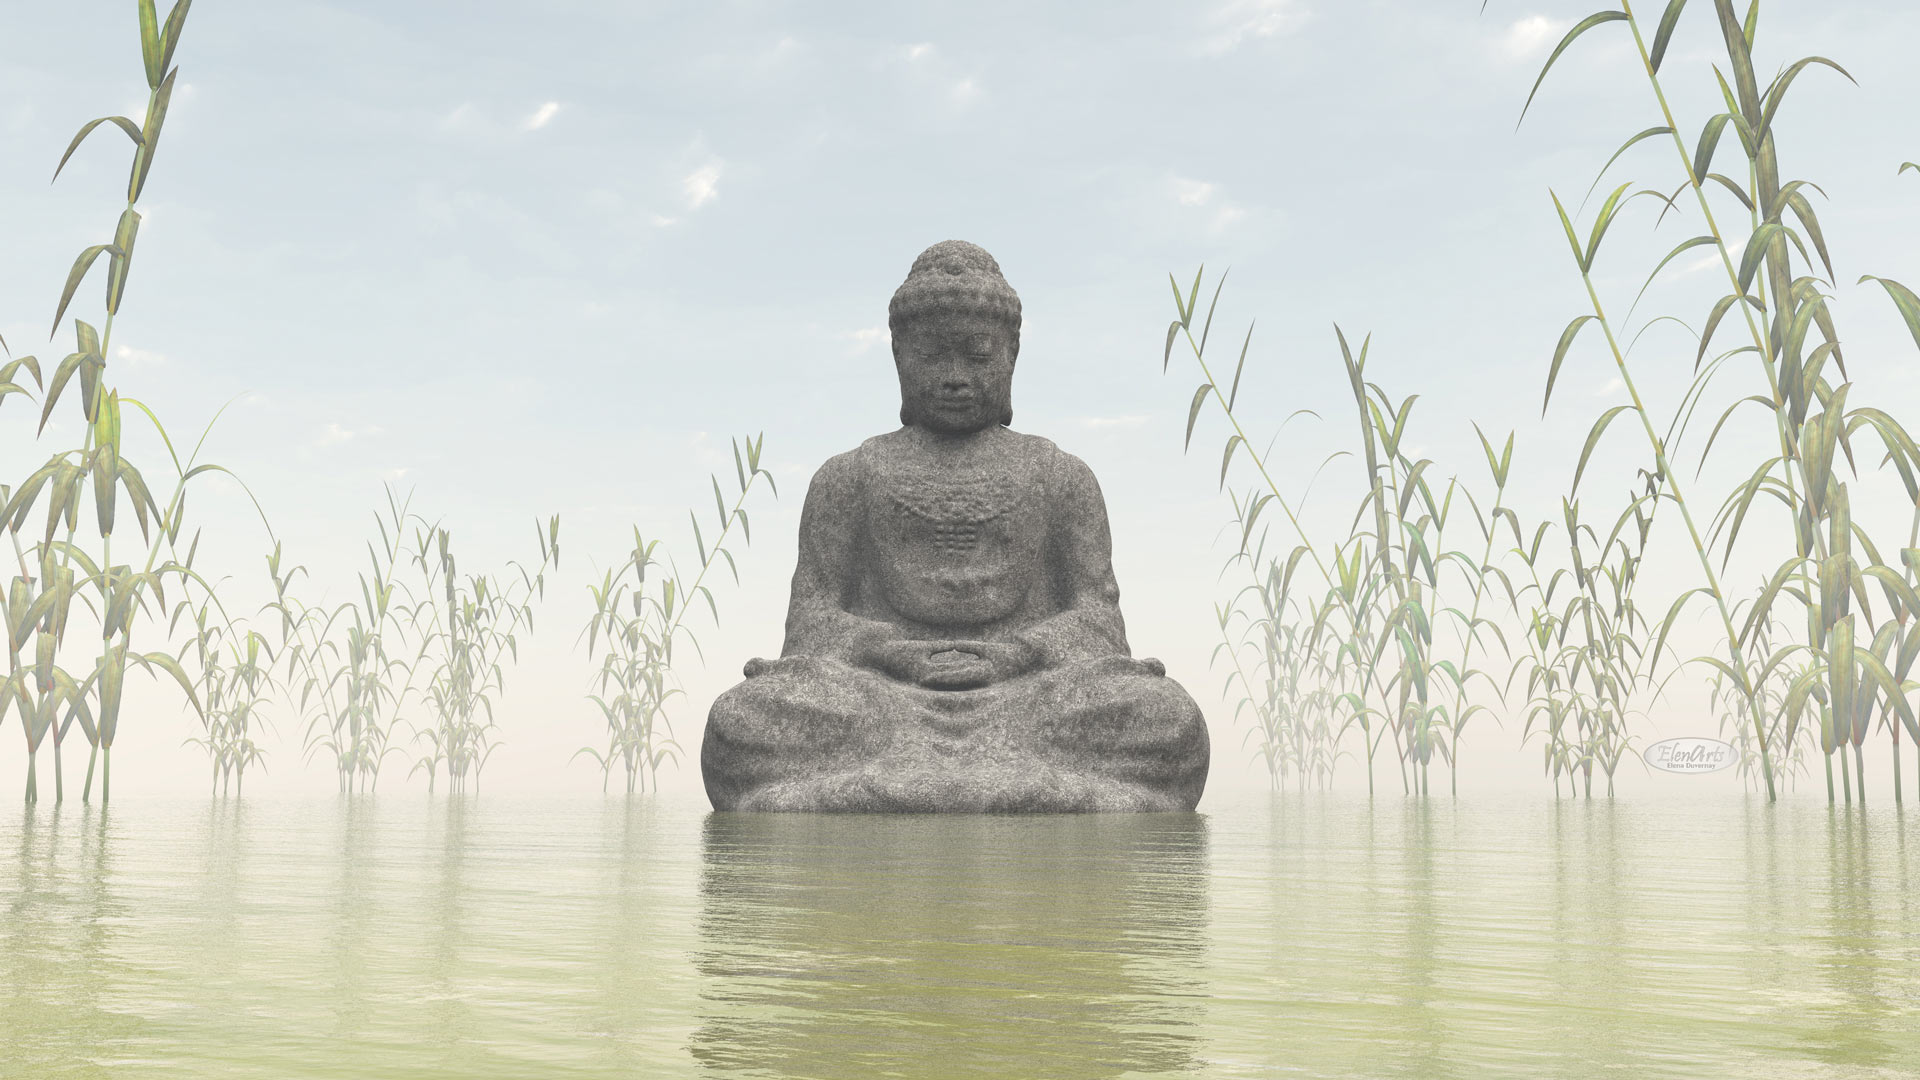 Stone buddha meditating next to bamboos by morning light - 3D render